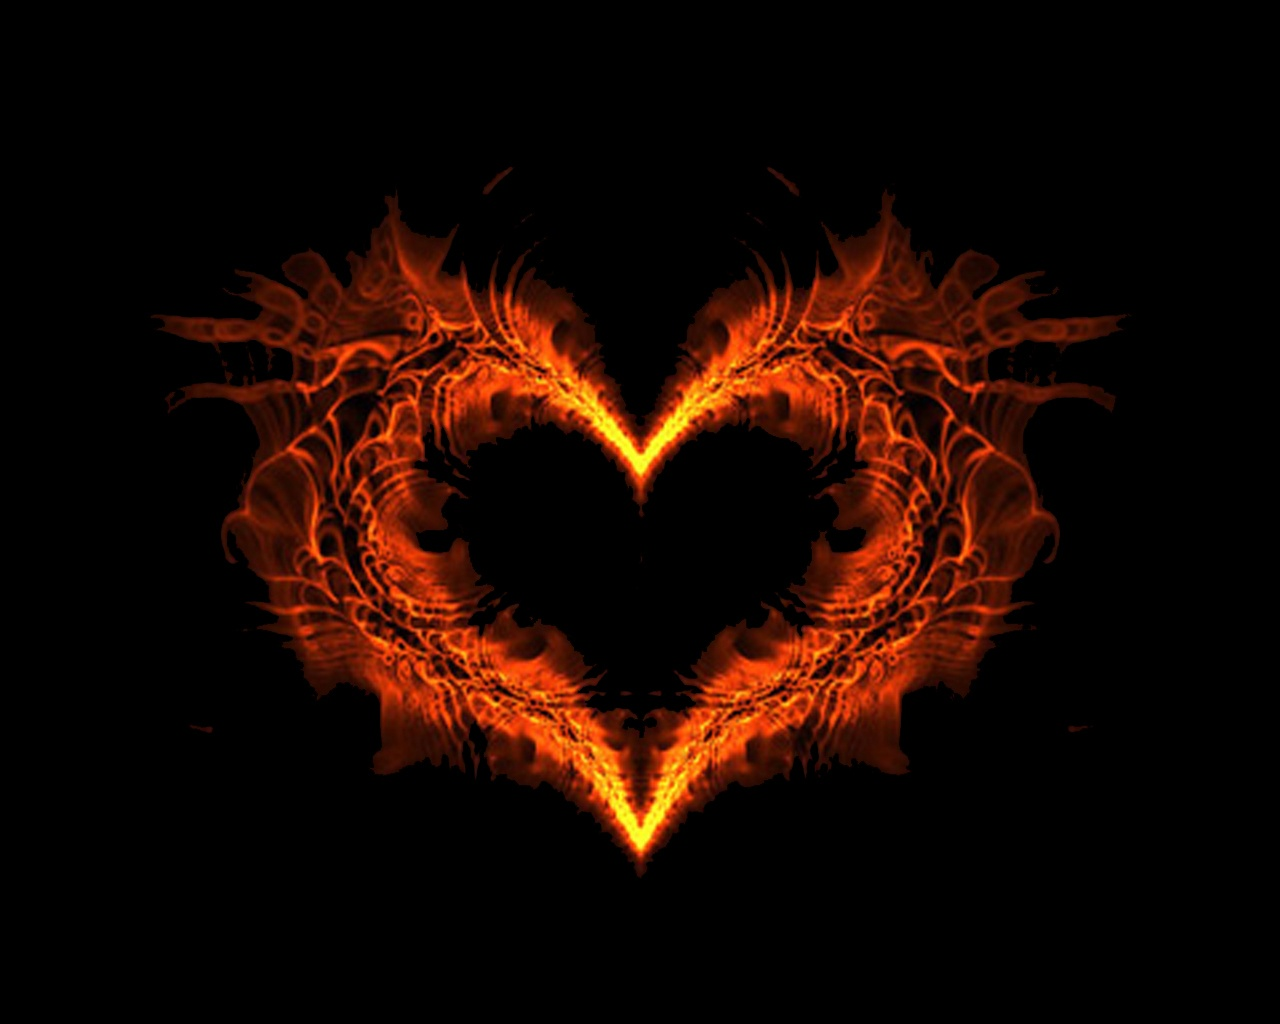 Burning Love Hd Wallpapers: Elblogdeandyrivas: CORAZONES GENIALES